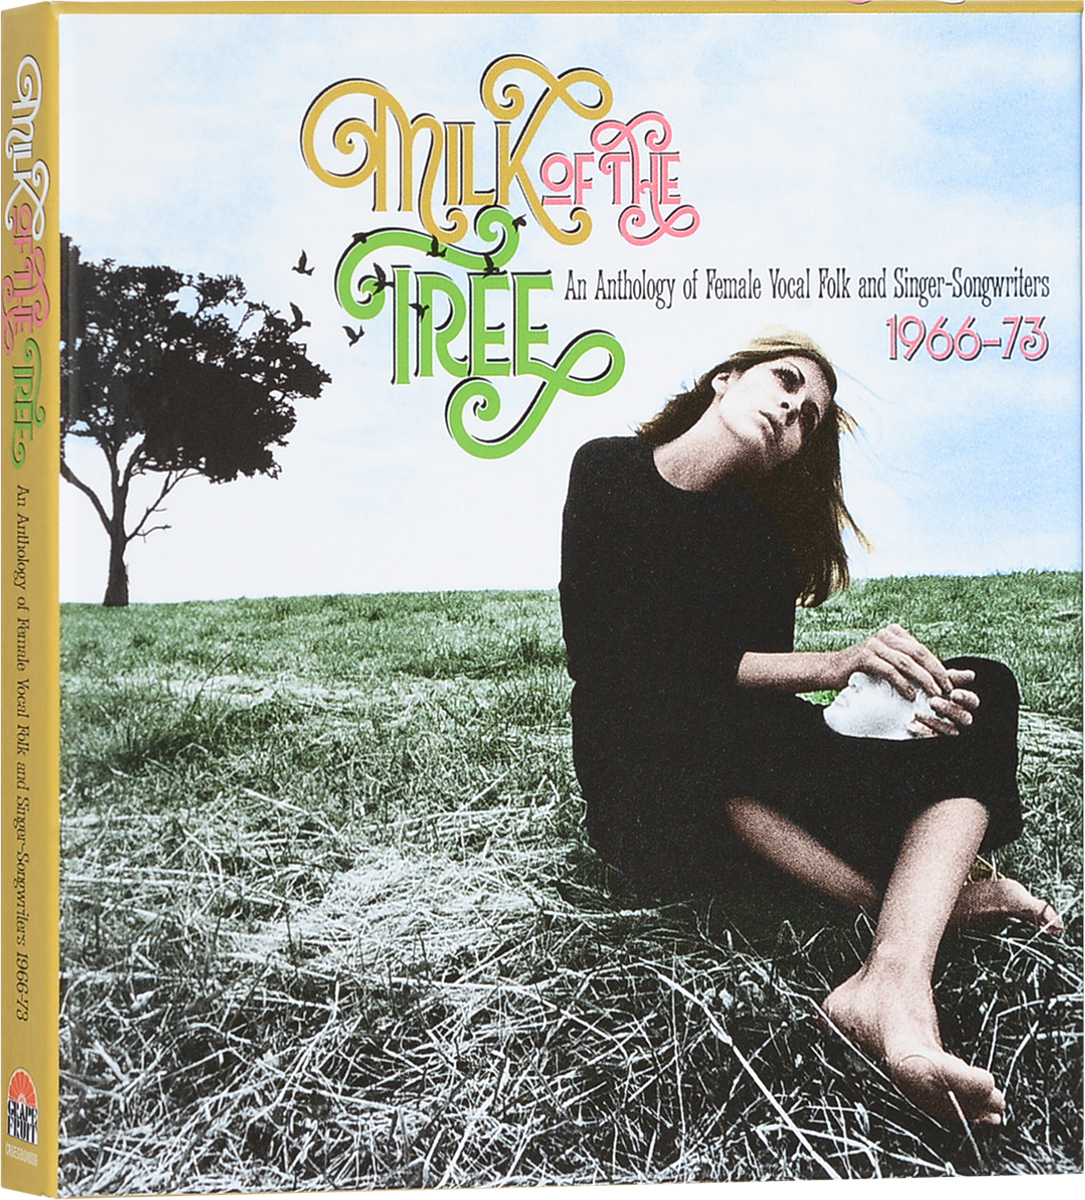 Milk Of The Tree: Anthology Of Female Vocal Folk And Singer-Songwriters 1966-73 (3 CD) sulphated galactans of red seaweeds